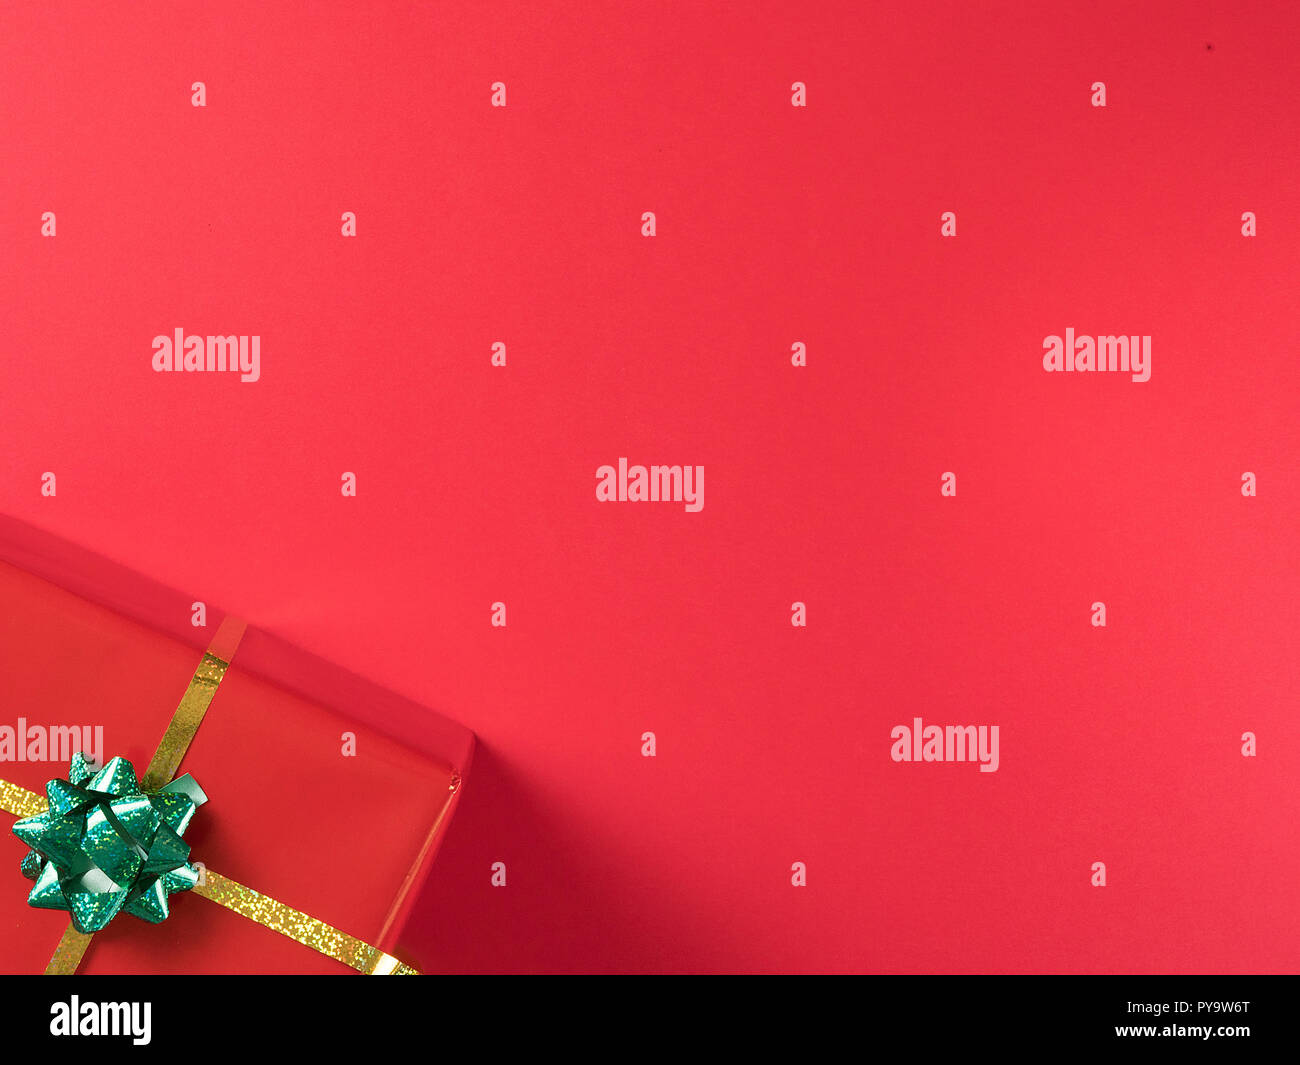 Christmas Background Gif Beautiful Christmas Red Gif Boxe On Red Background Elegance Style